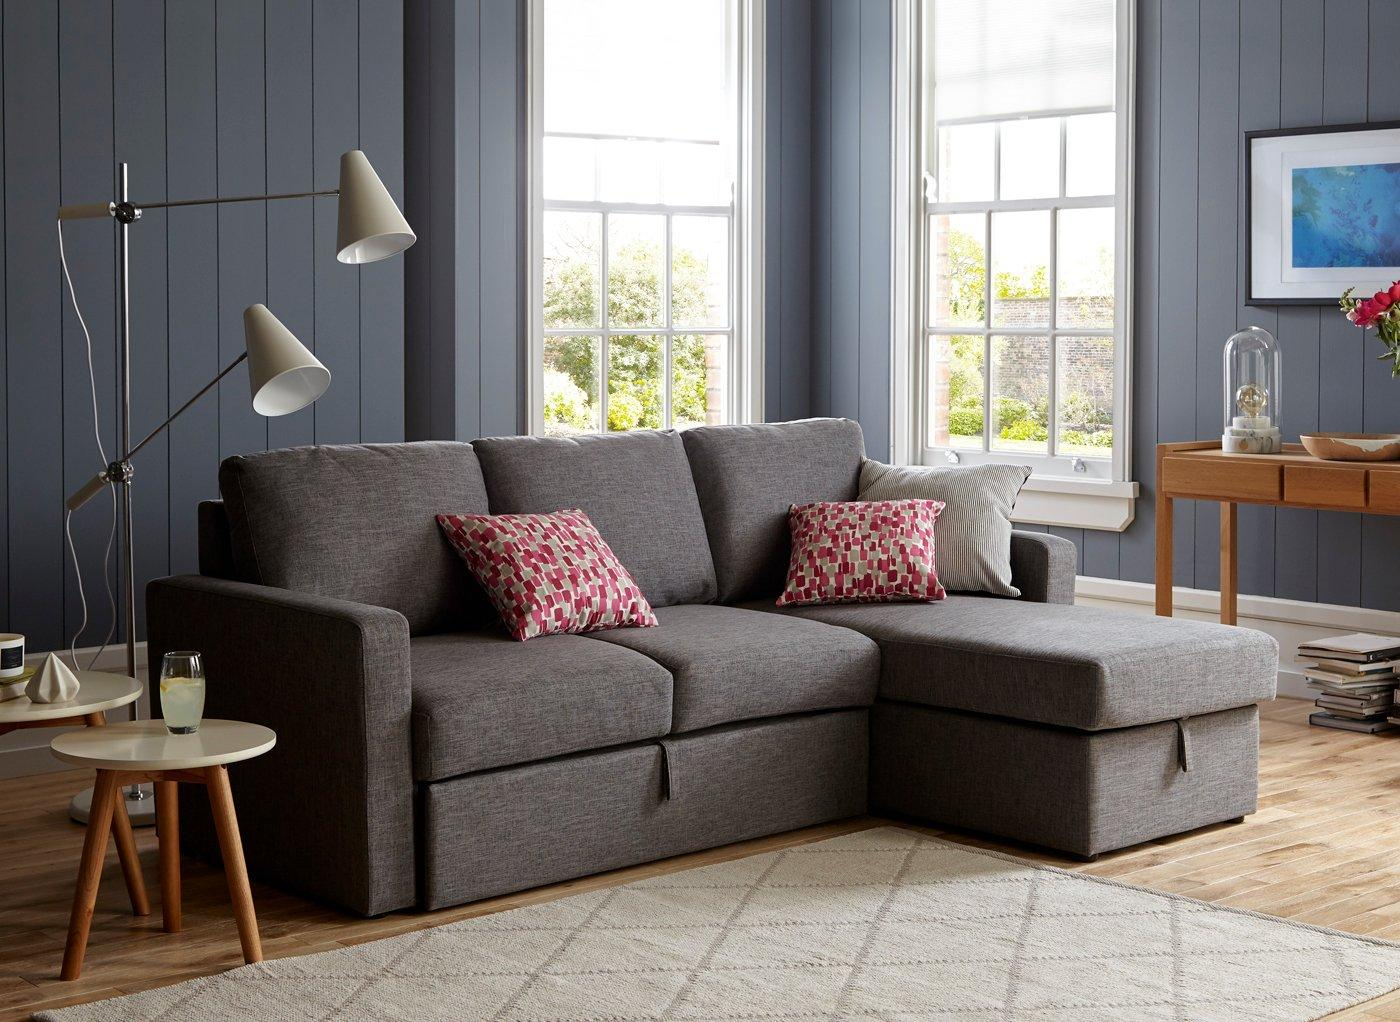 Sofa Beds Perth Madden Sofa Bed Corner Sofa Beds Sofa Beds Dreams